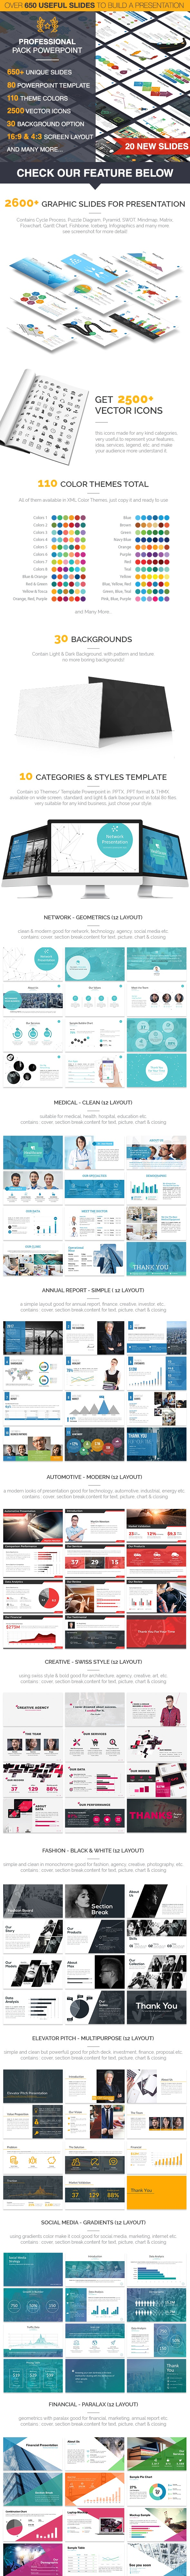 Powerpoint Template Professional Pack - Pitch Deck PowerPoint Templates